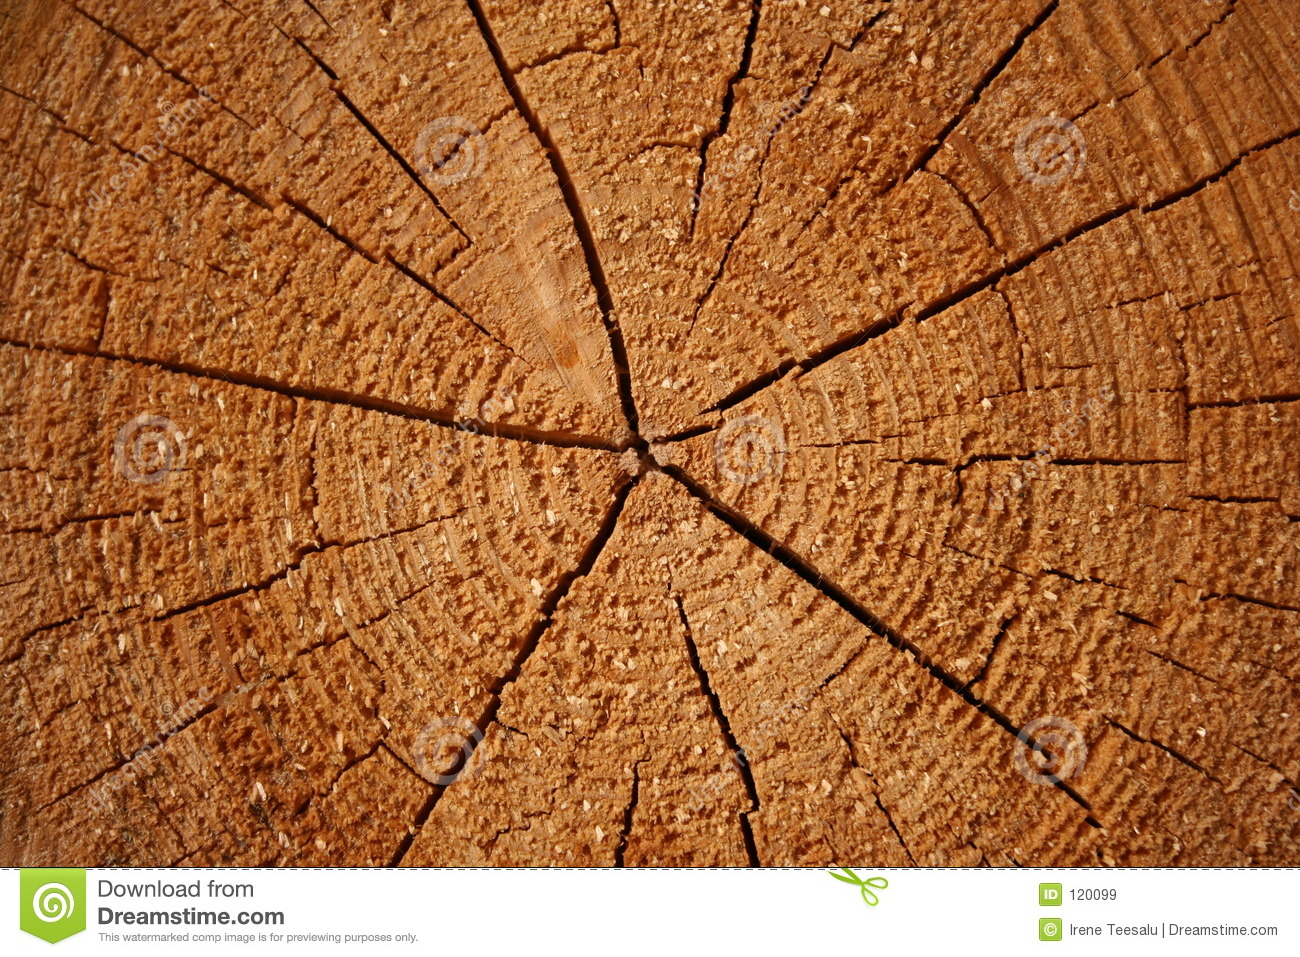 Growth rings on a log